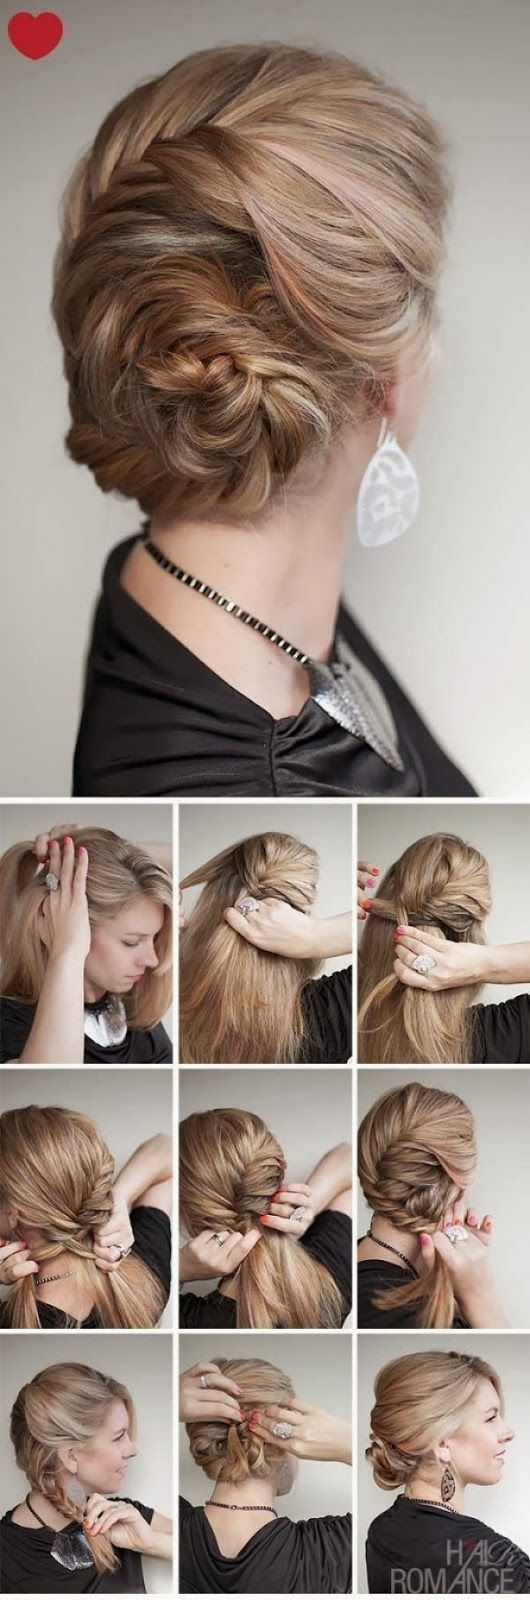 best images about hair on pinterest my mom solve and keep calm